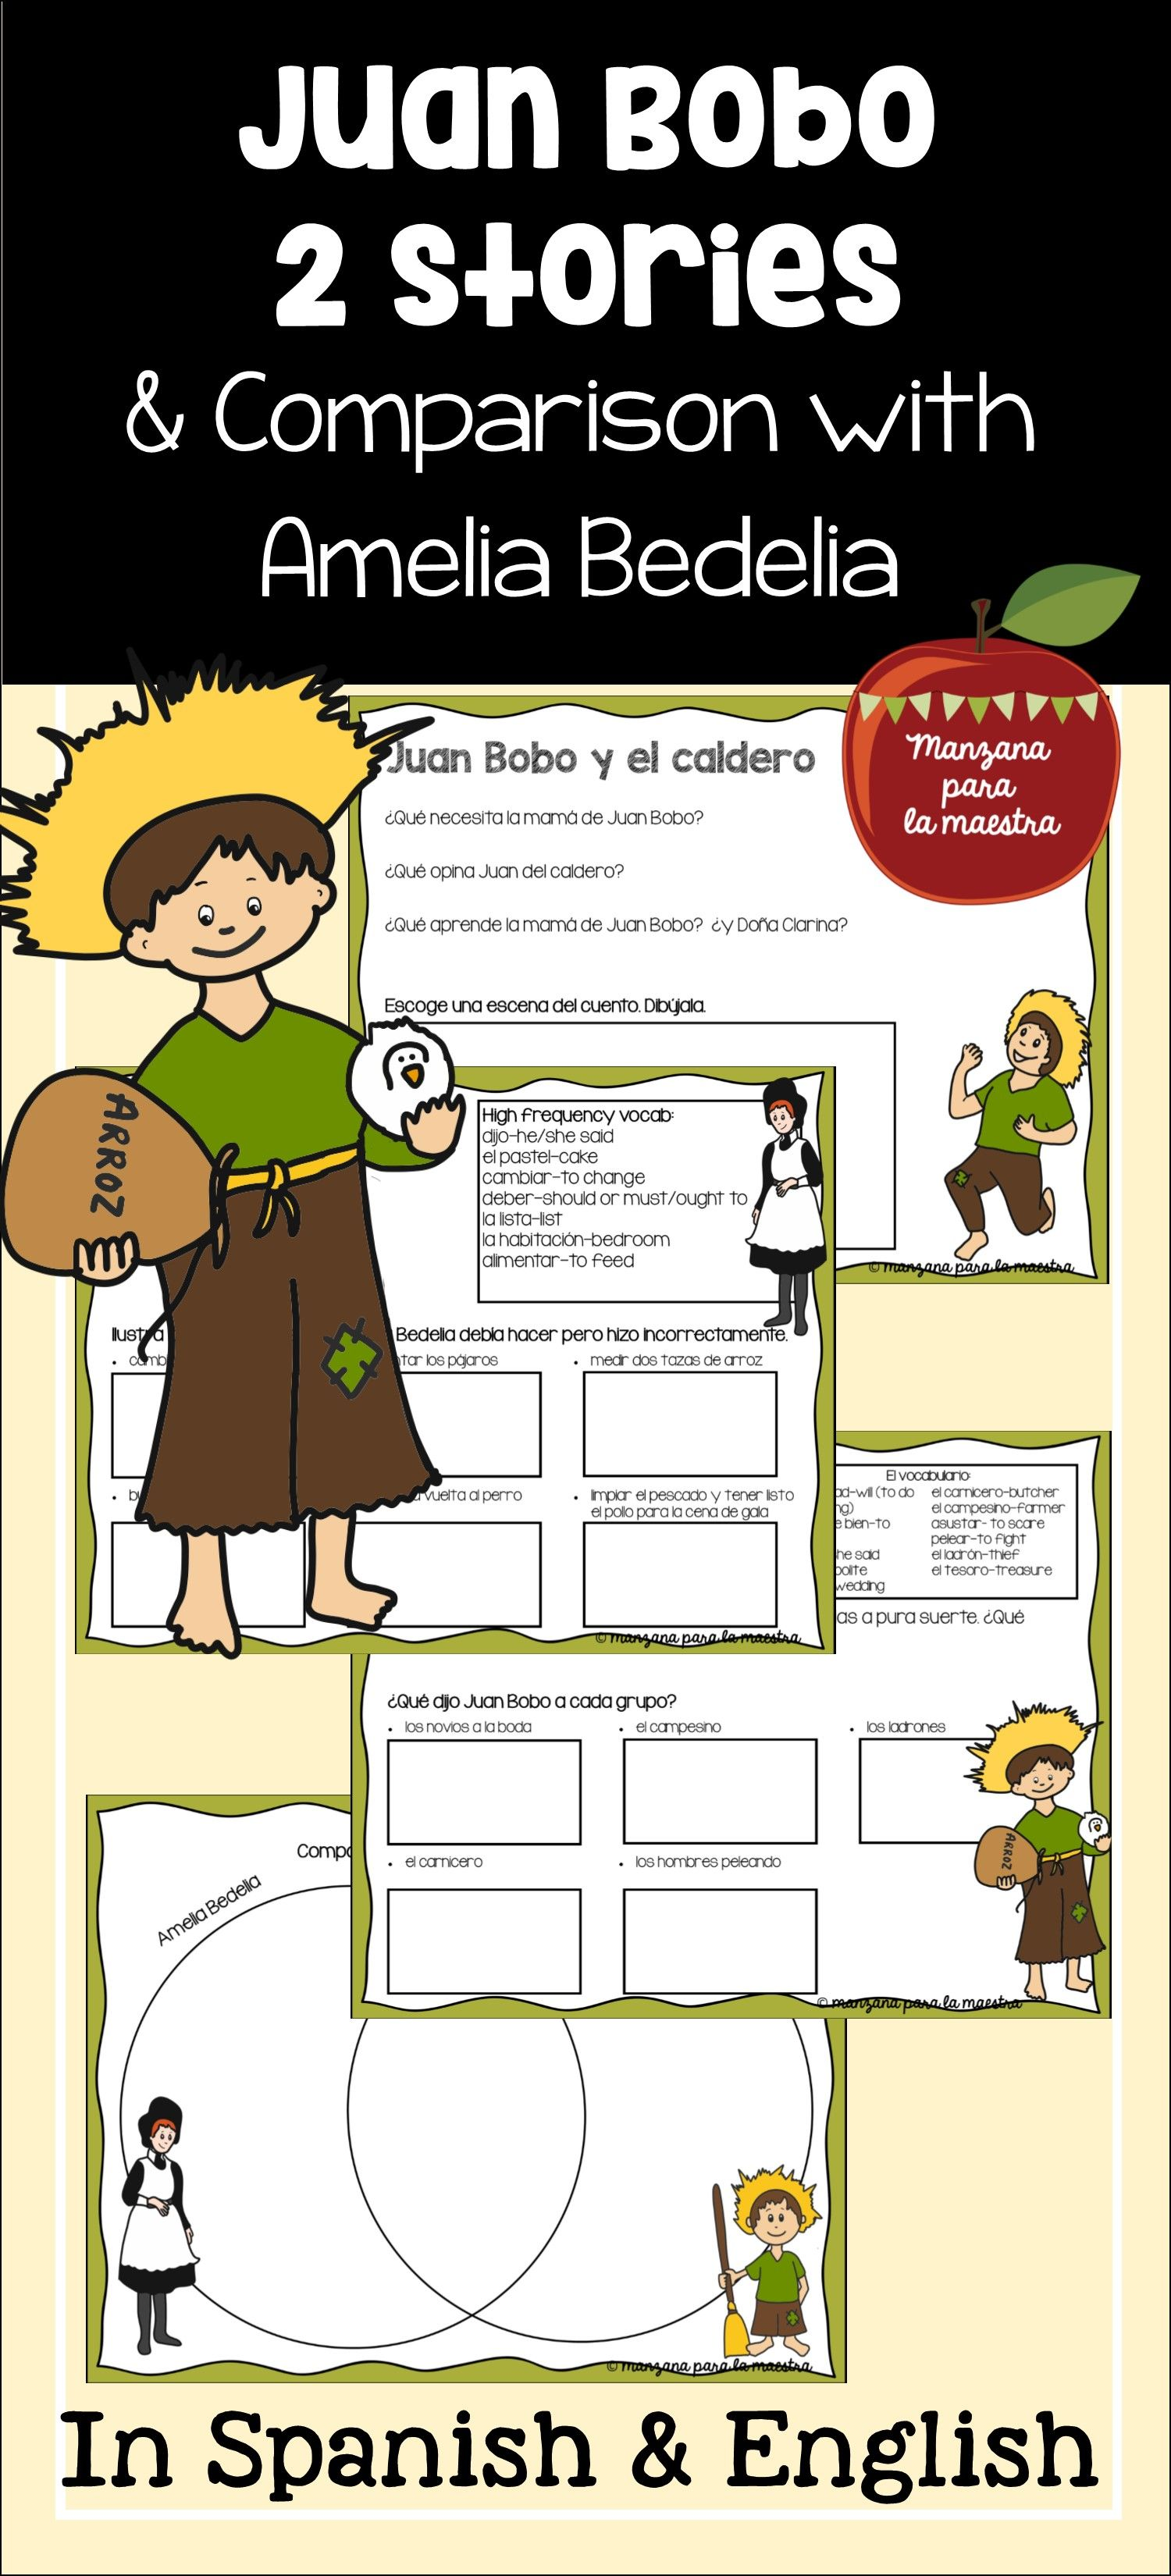 Juan Bobo Reading Comprehension Questions And Activity For